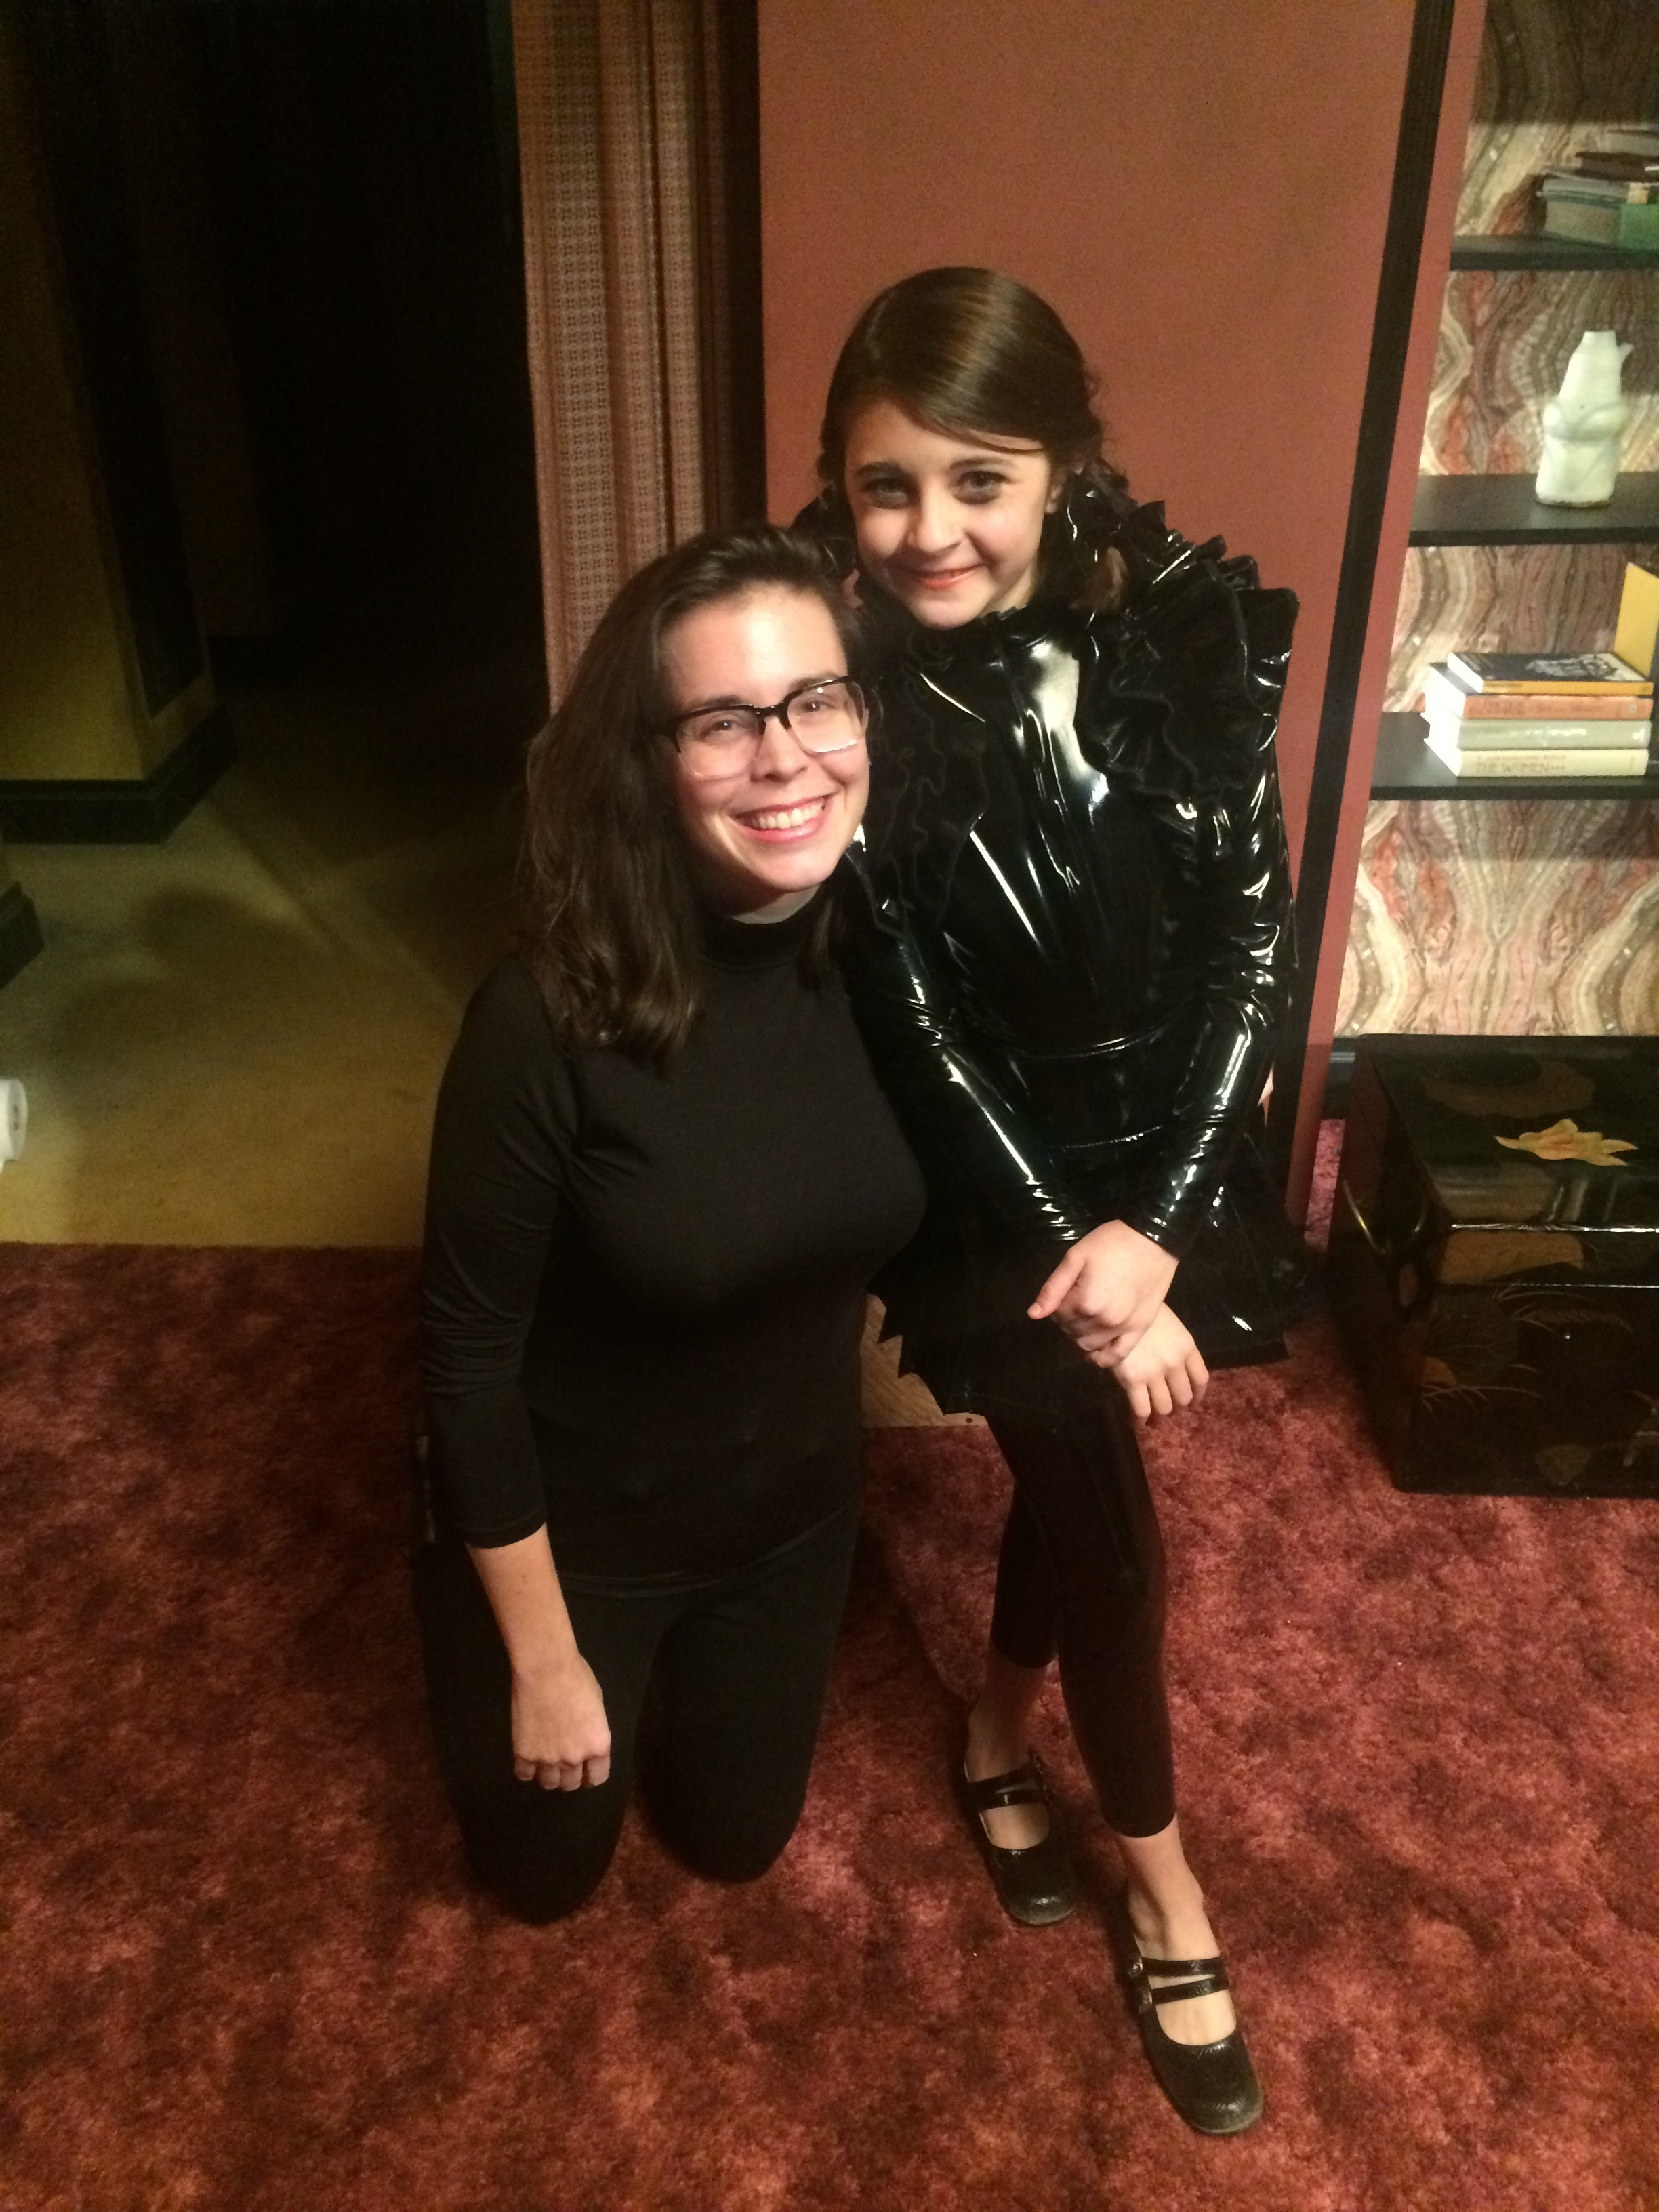 12 - Olivia and I on set in Jackies apartment.jpg